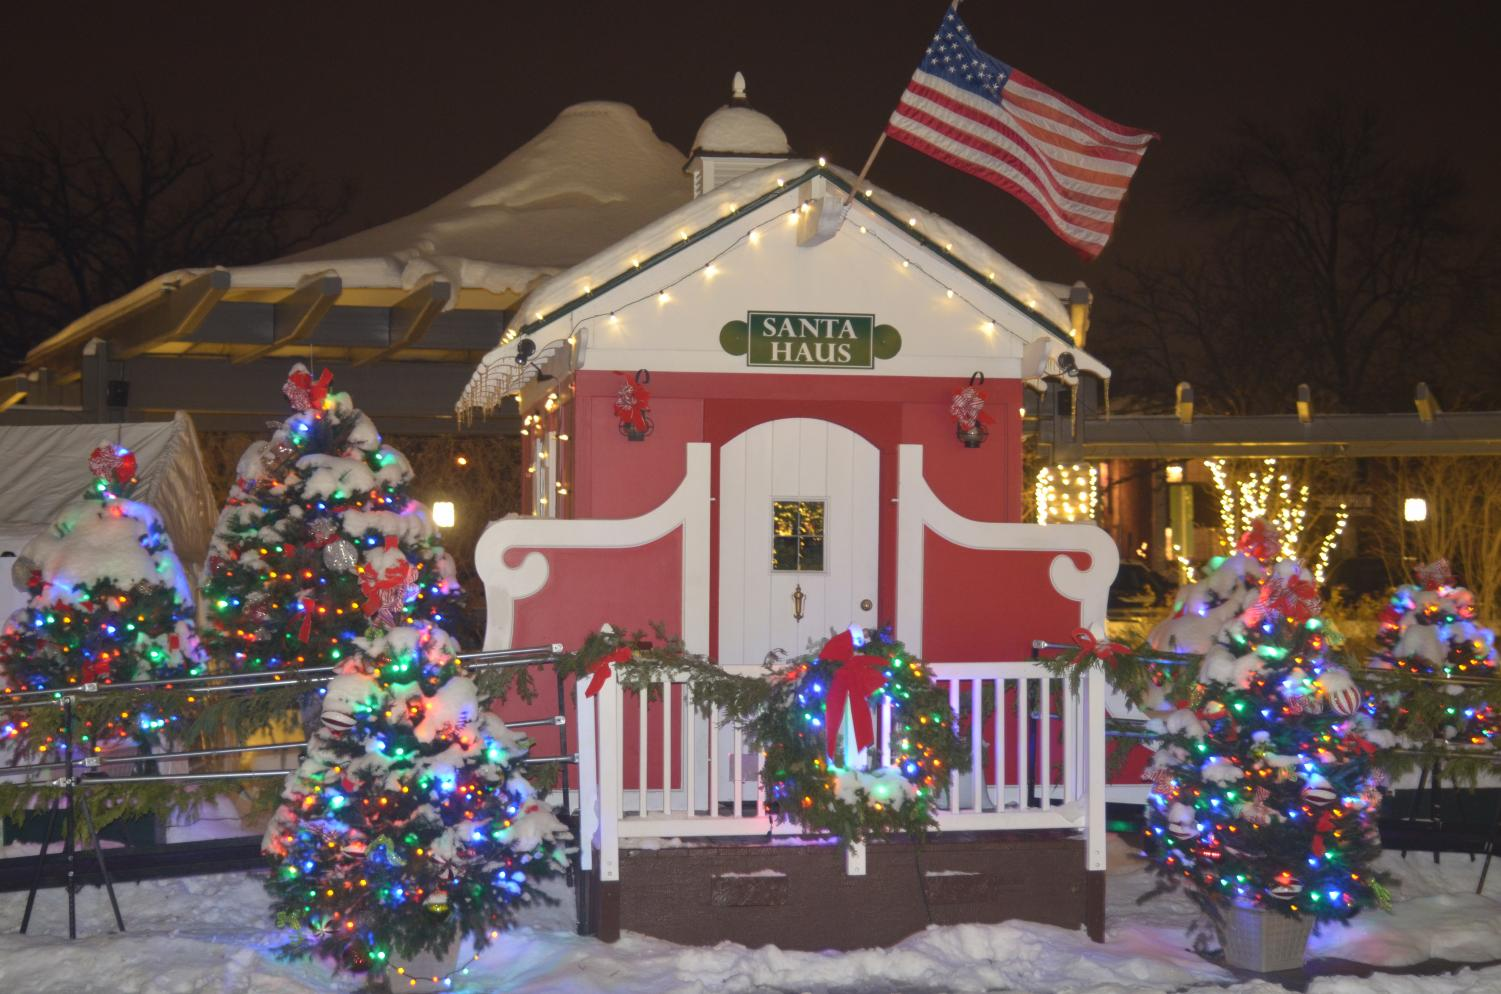 The Santa Haus located in Shain Park.